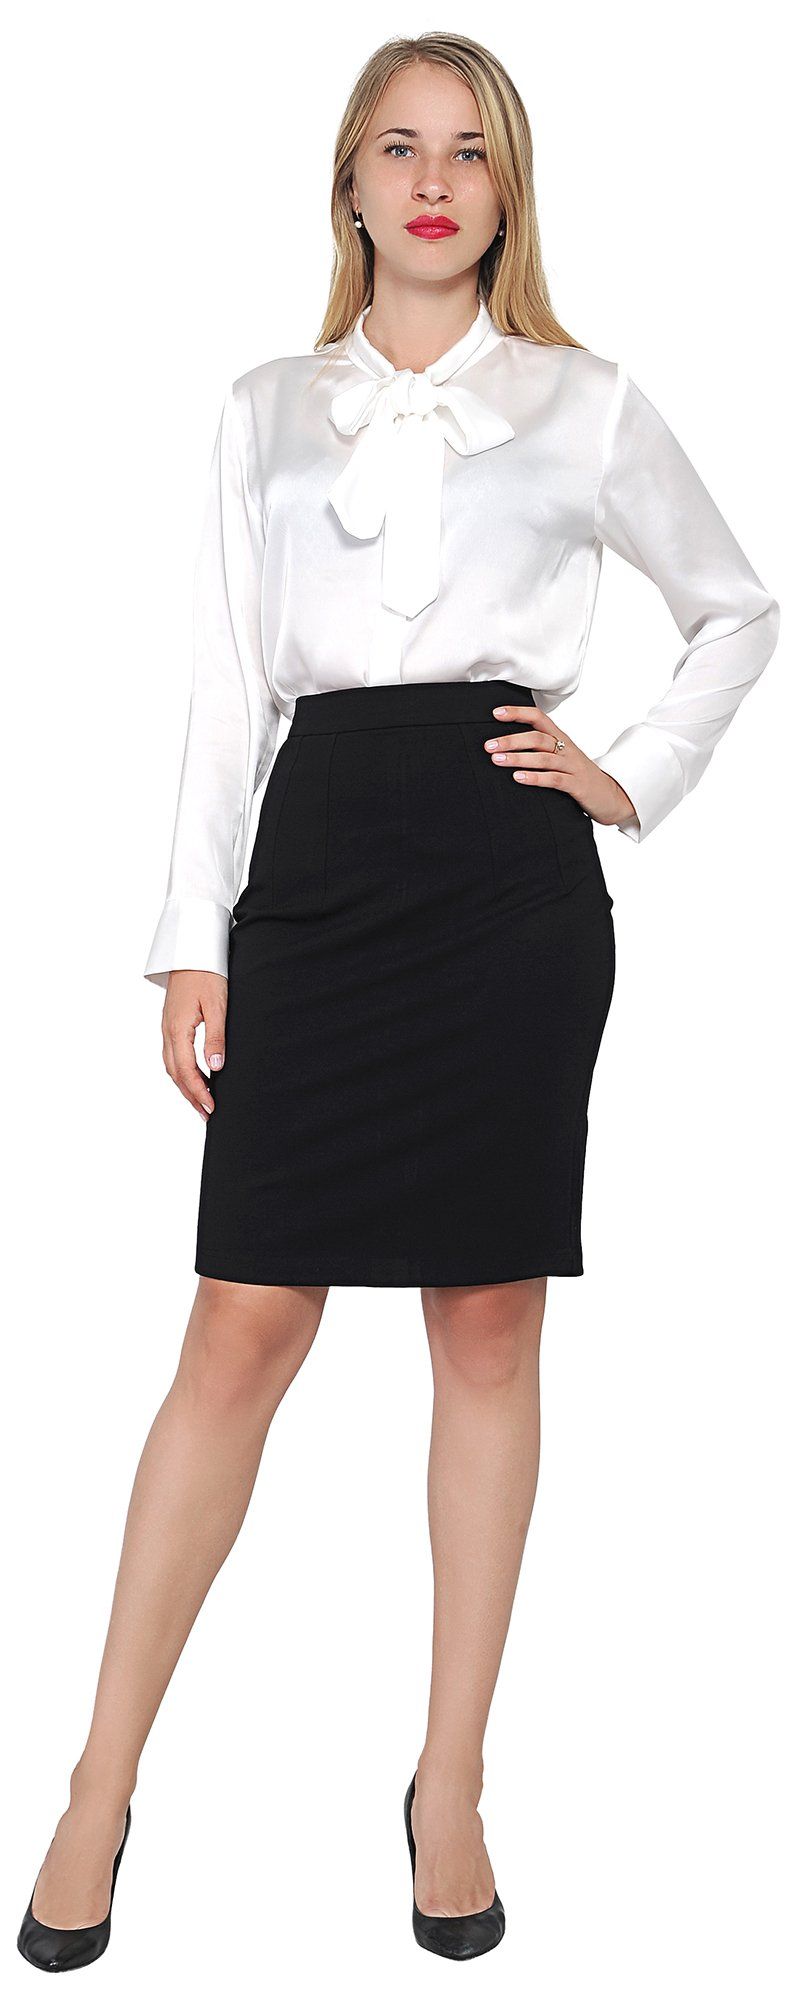 Marycrafts Women's Work Office Business Pencil Skirt L Black